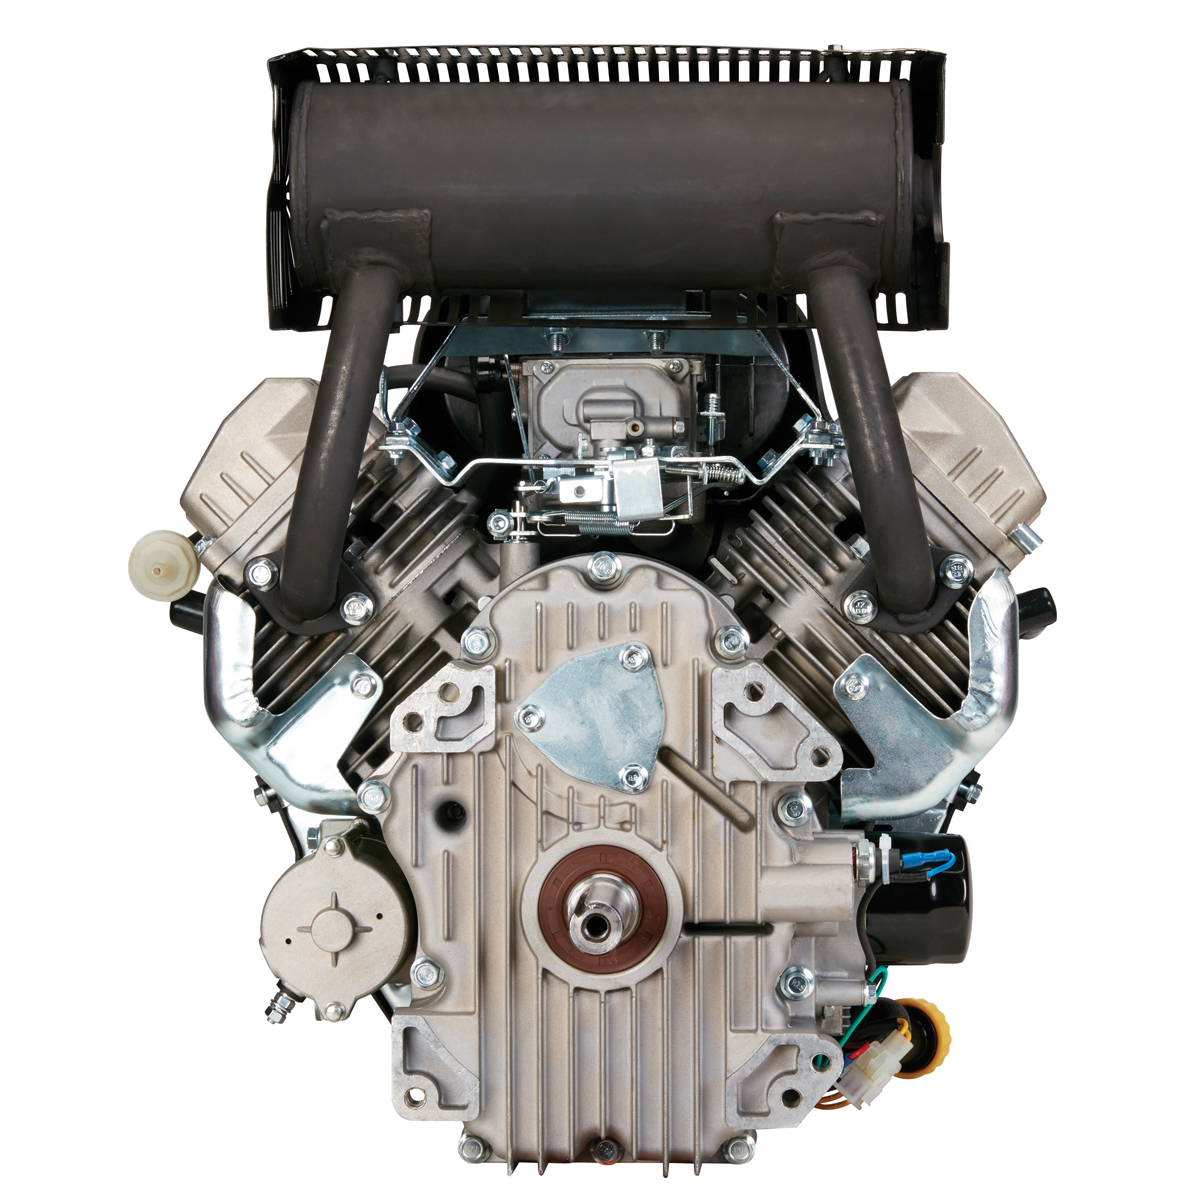 62879_zzz_alt4_500 708cc 22 hp v twin riding mower engine epa